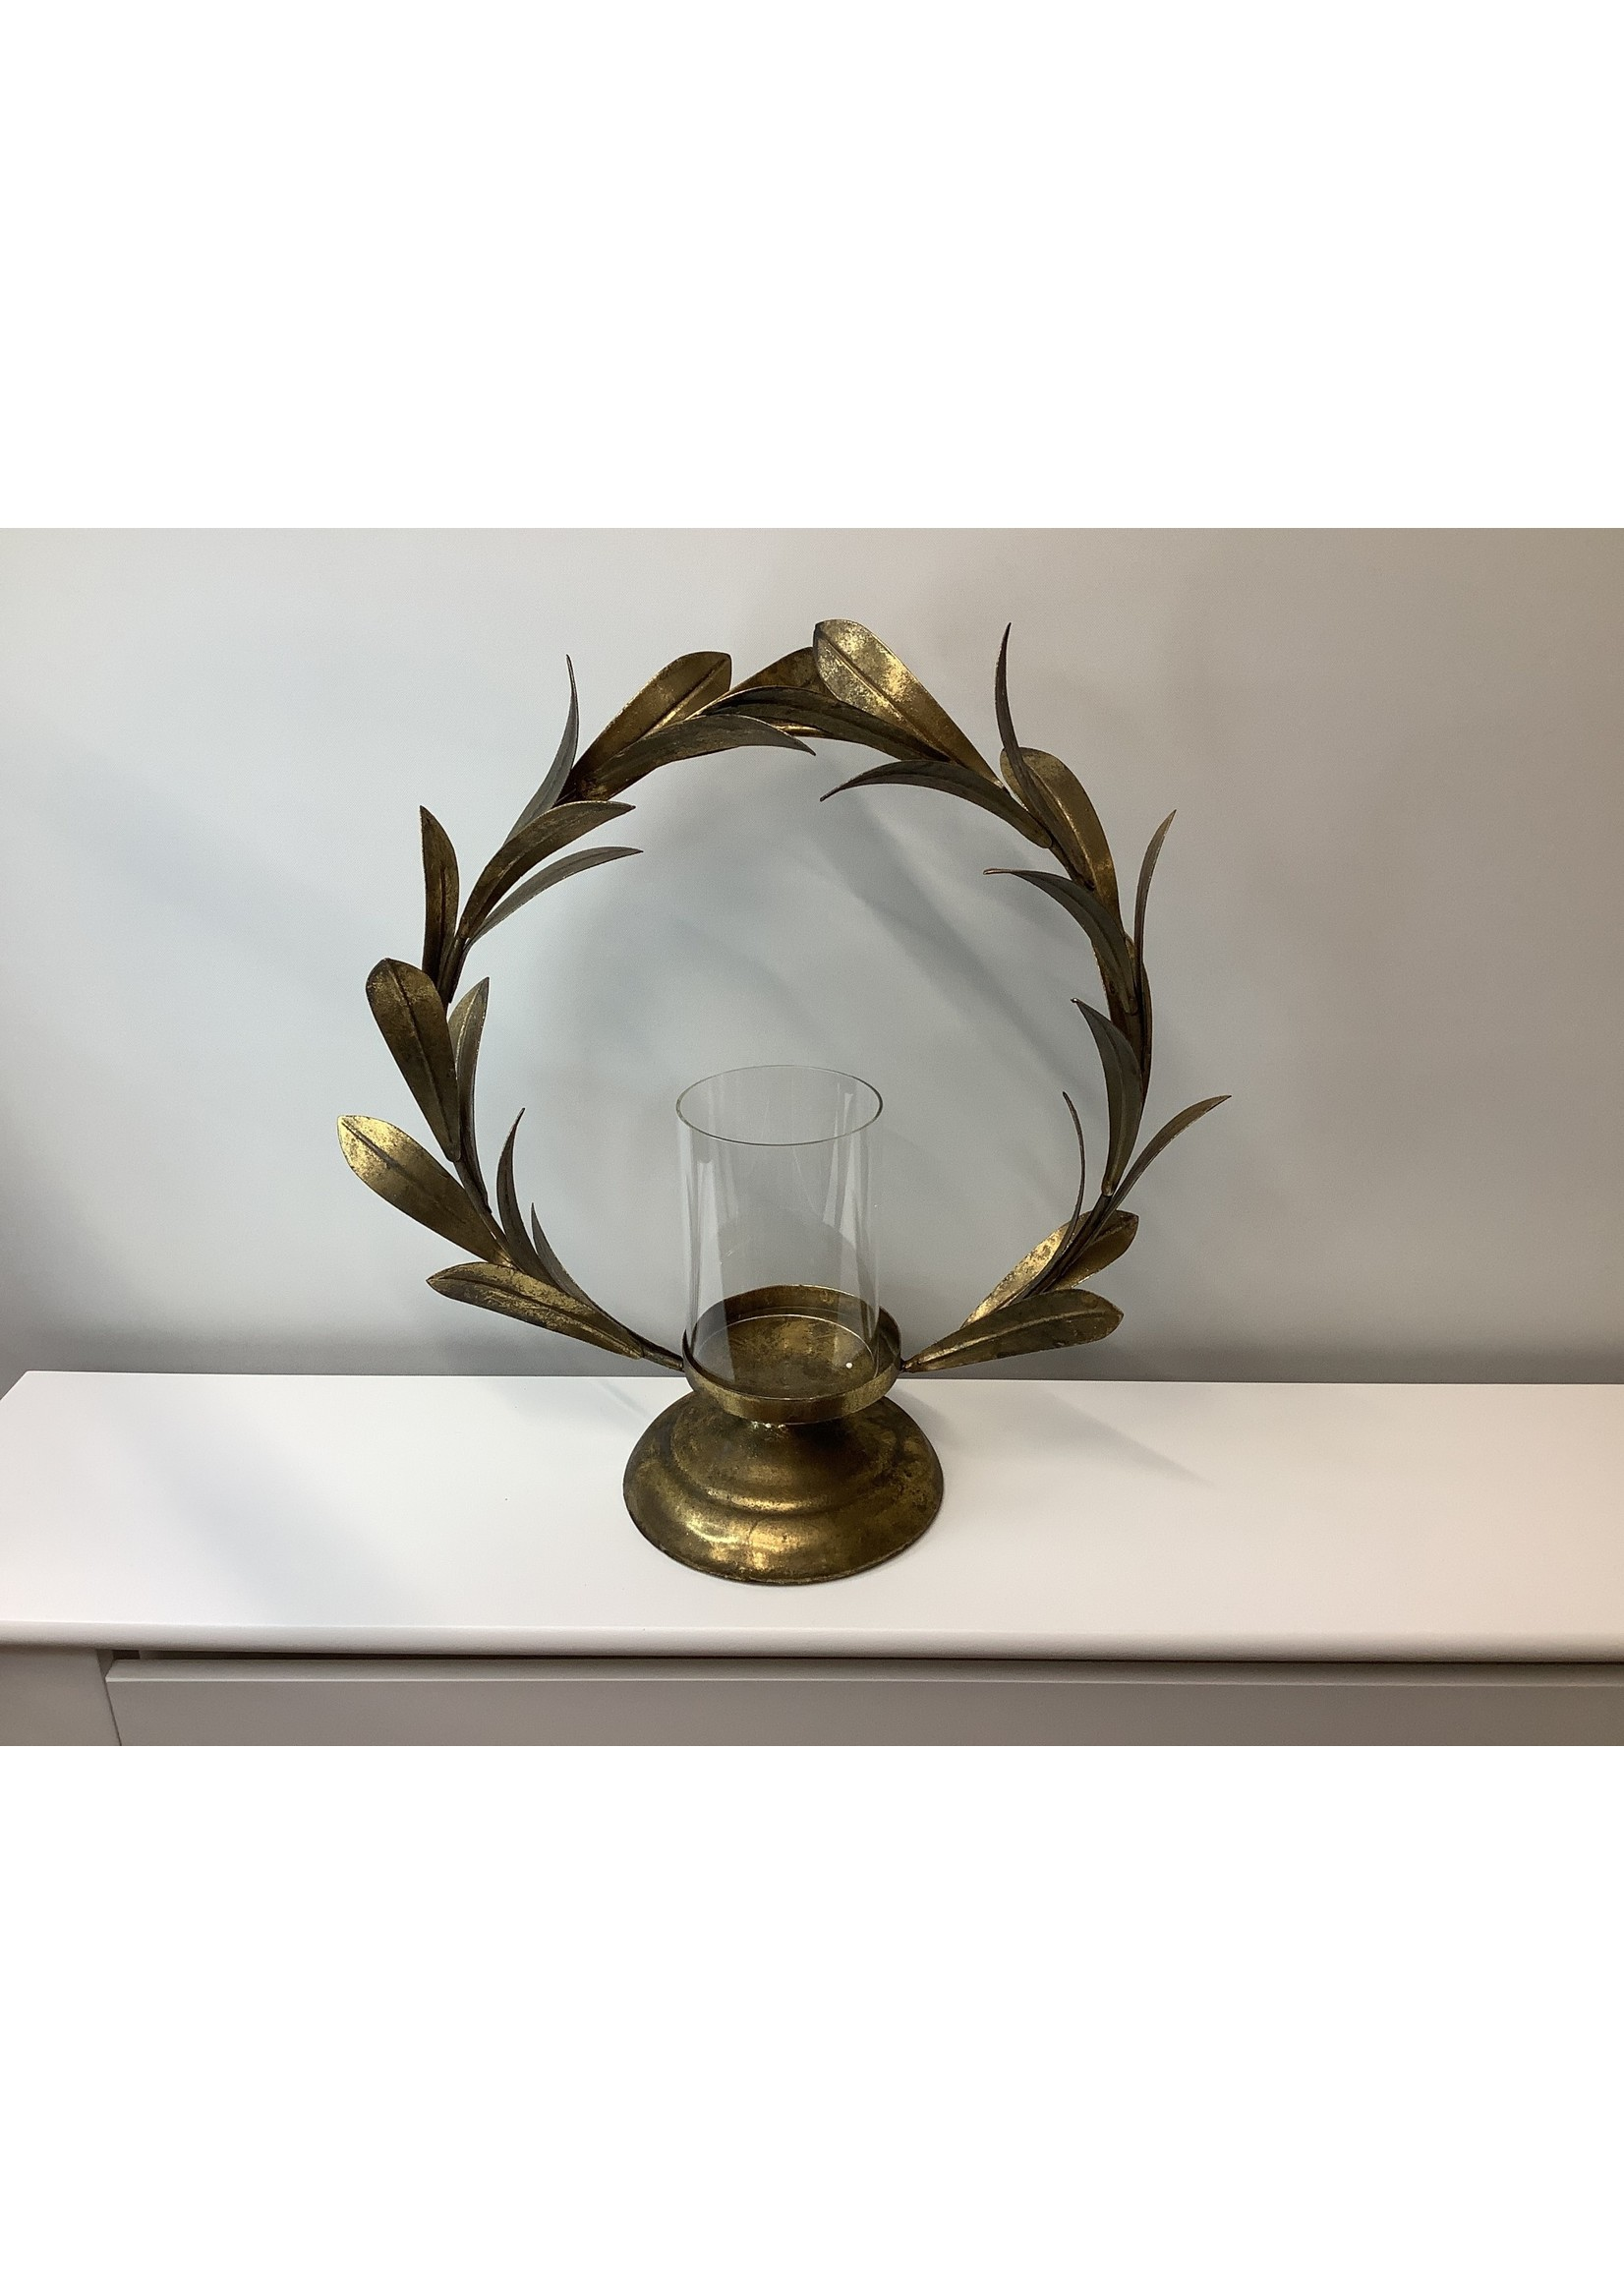 Gold leaf Large Candle Holder 38cm tall x 38cm wide